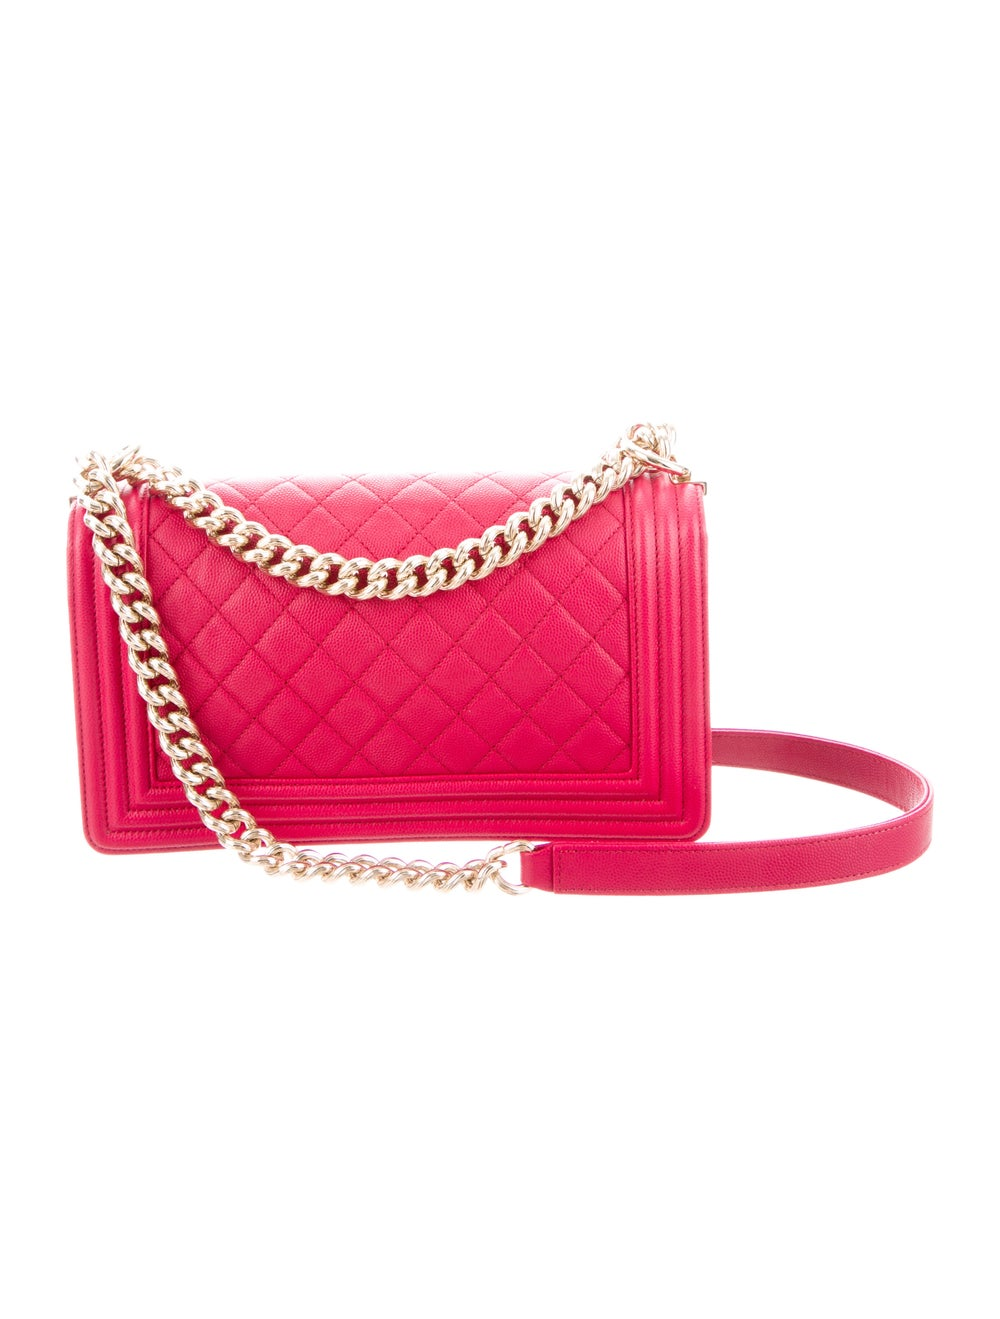 Chanel Quilted Medium Boy Bag Pink - image 4